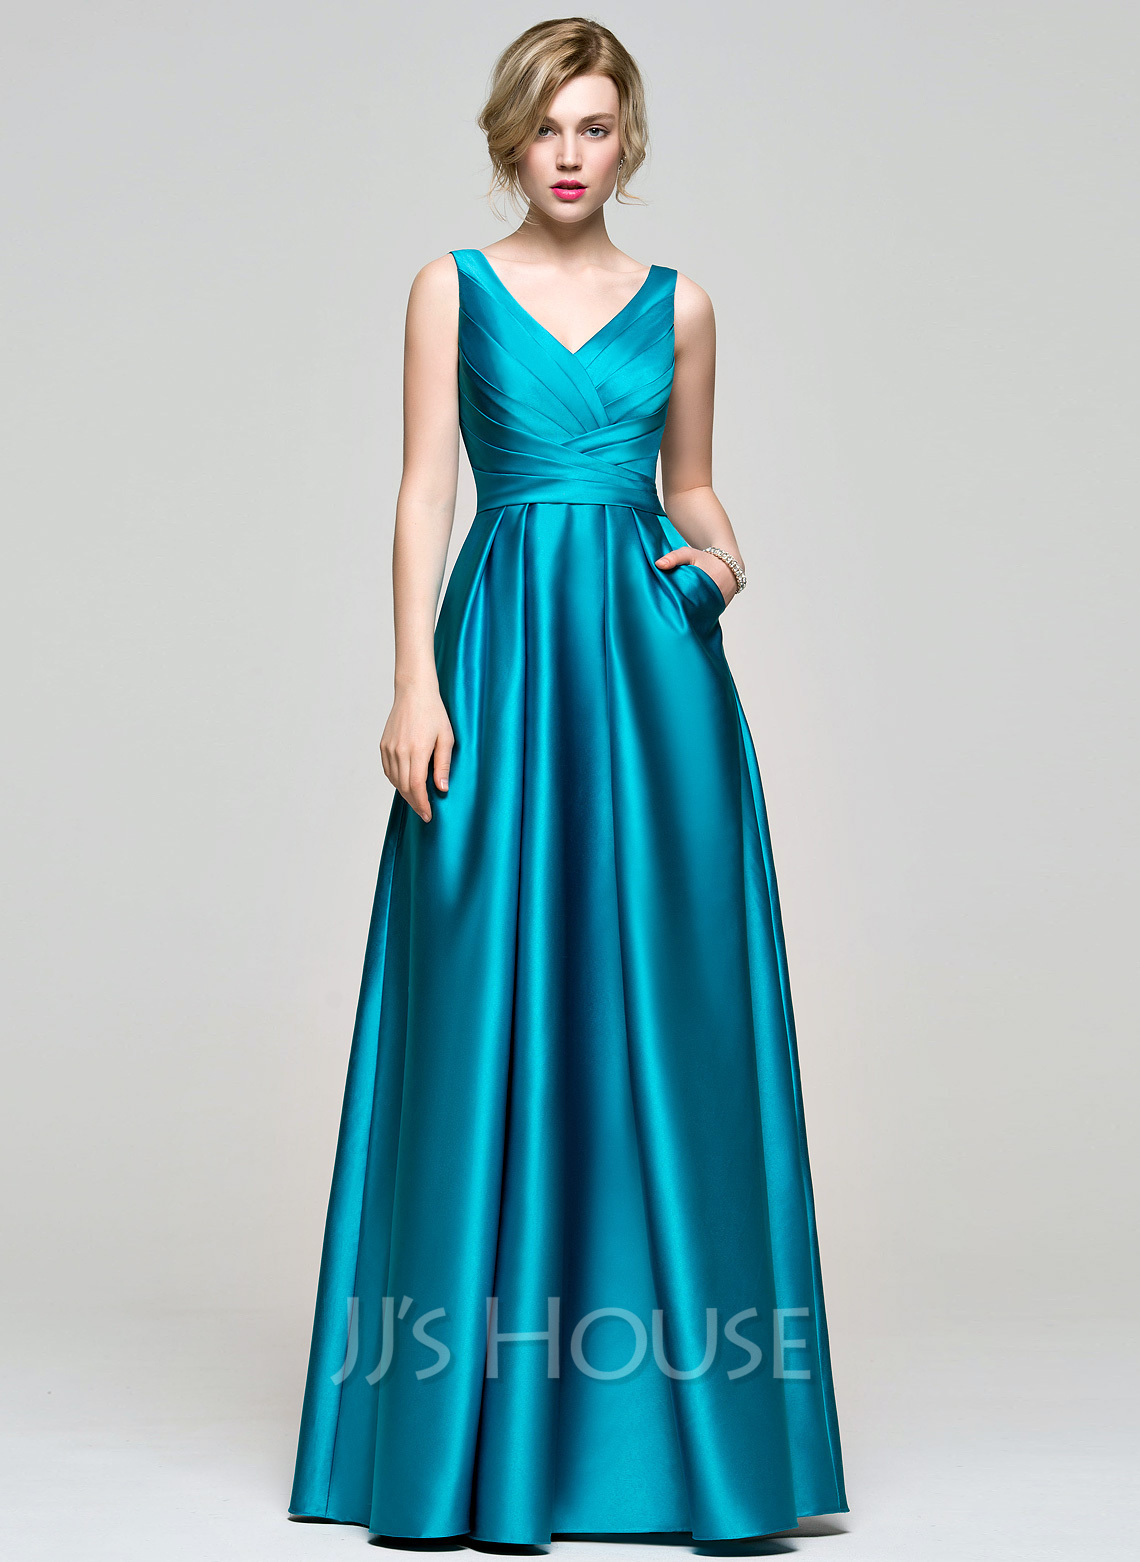 a69141e90b9a A-Line/Princess V-neck Floor-Length Satin Prom Dresses With Ruffle. Loading  zoom